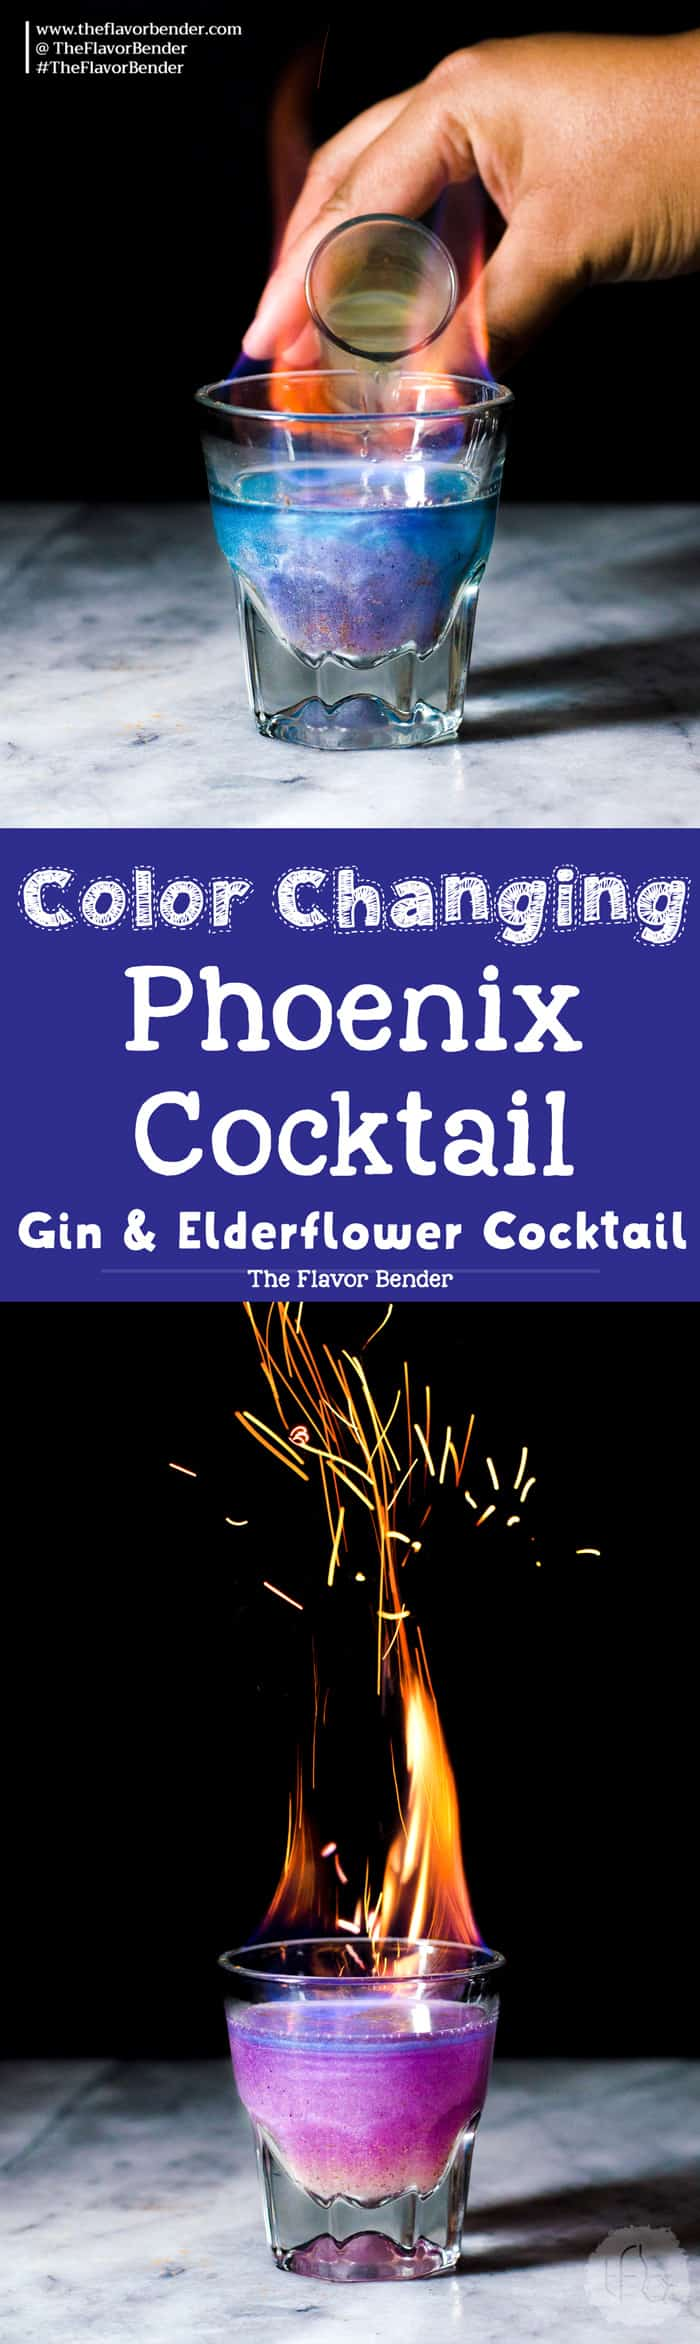 Phoenix Cocktail - A Gin and Elderflower Cocktail that is a Color Changing Shimmery Cocktail! Made with Butterfly pea Flower infused gin anda fruity, tangy, floral and sweet lemon Elderflower syrup.